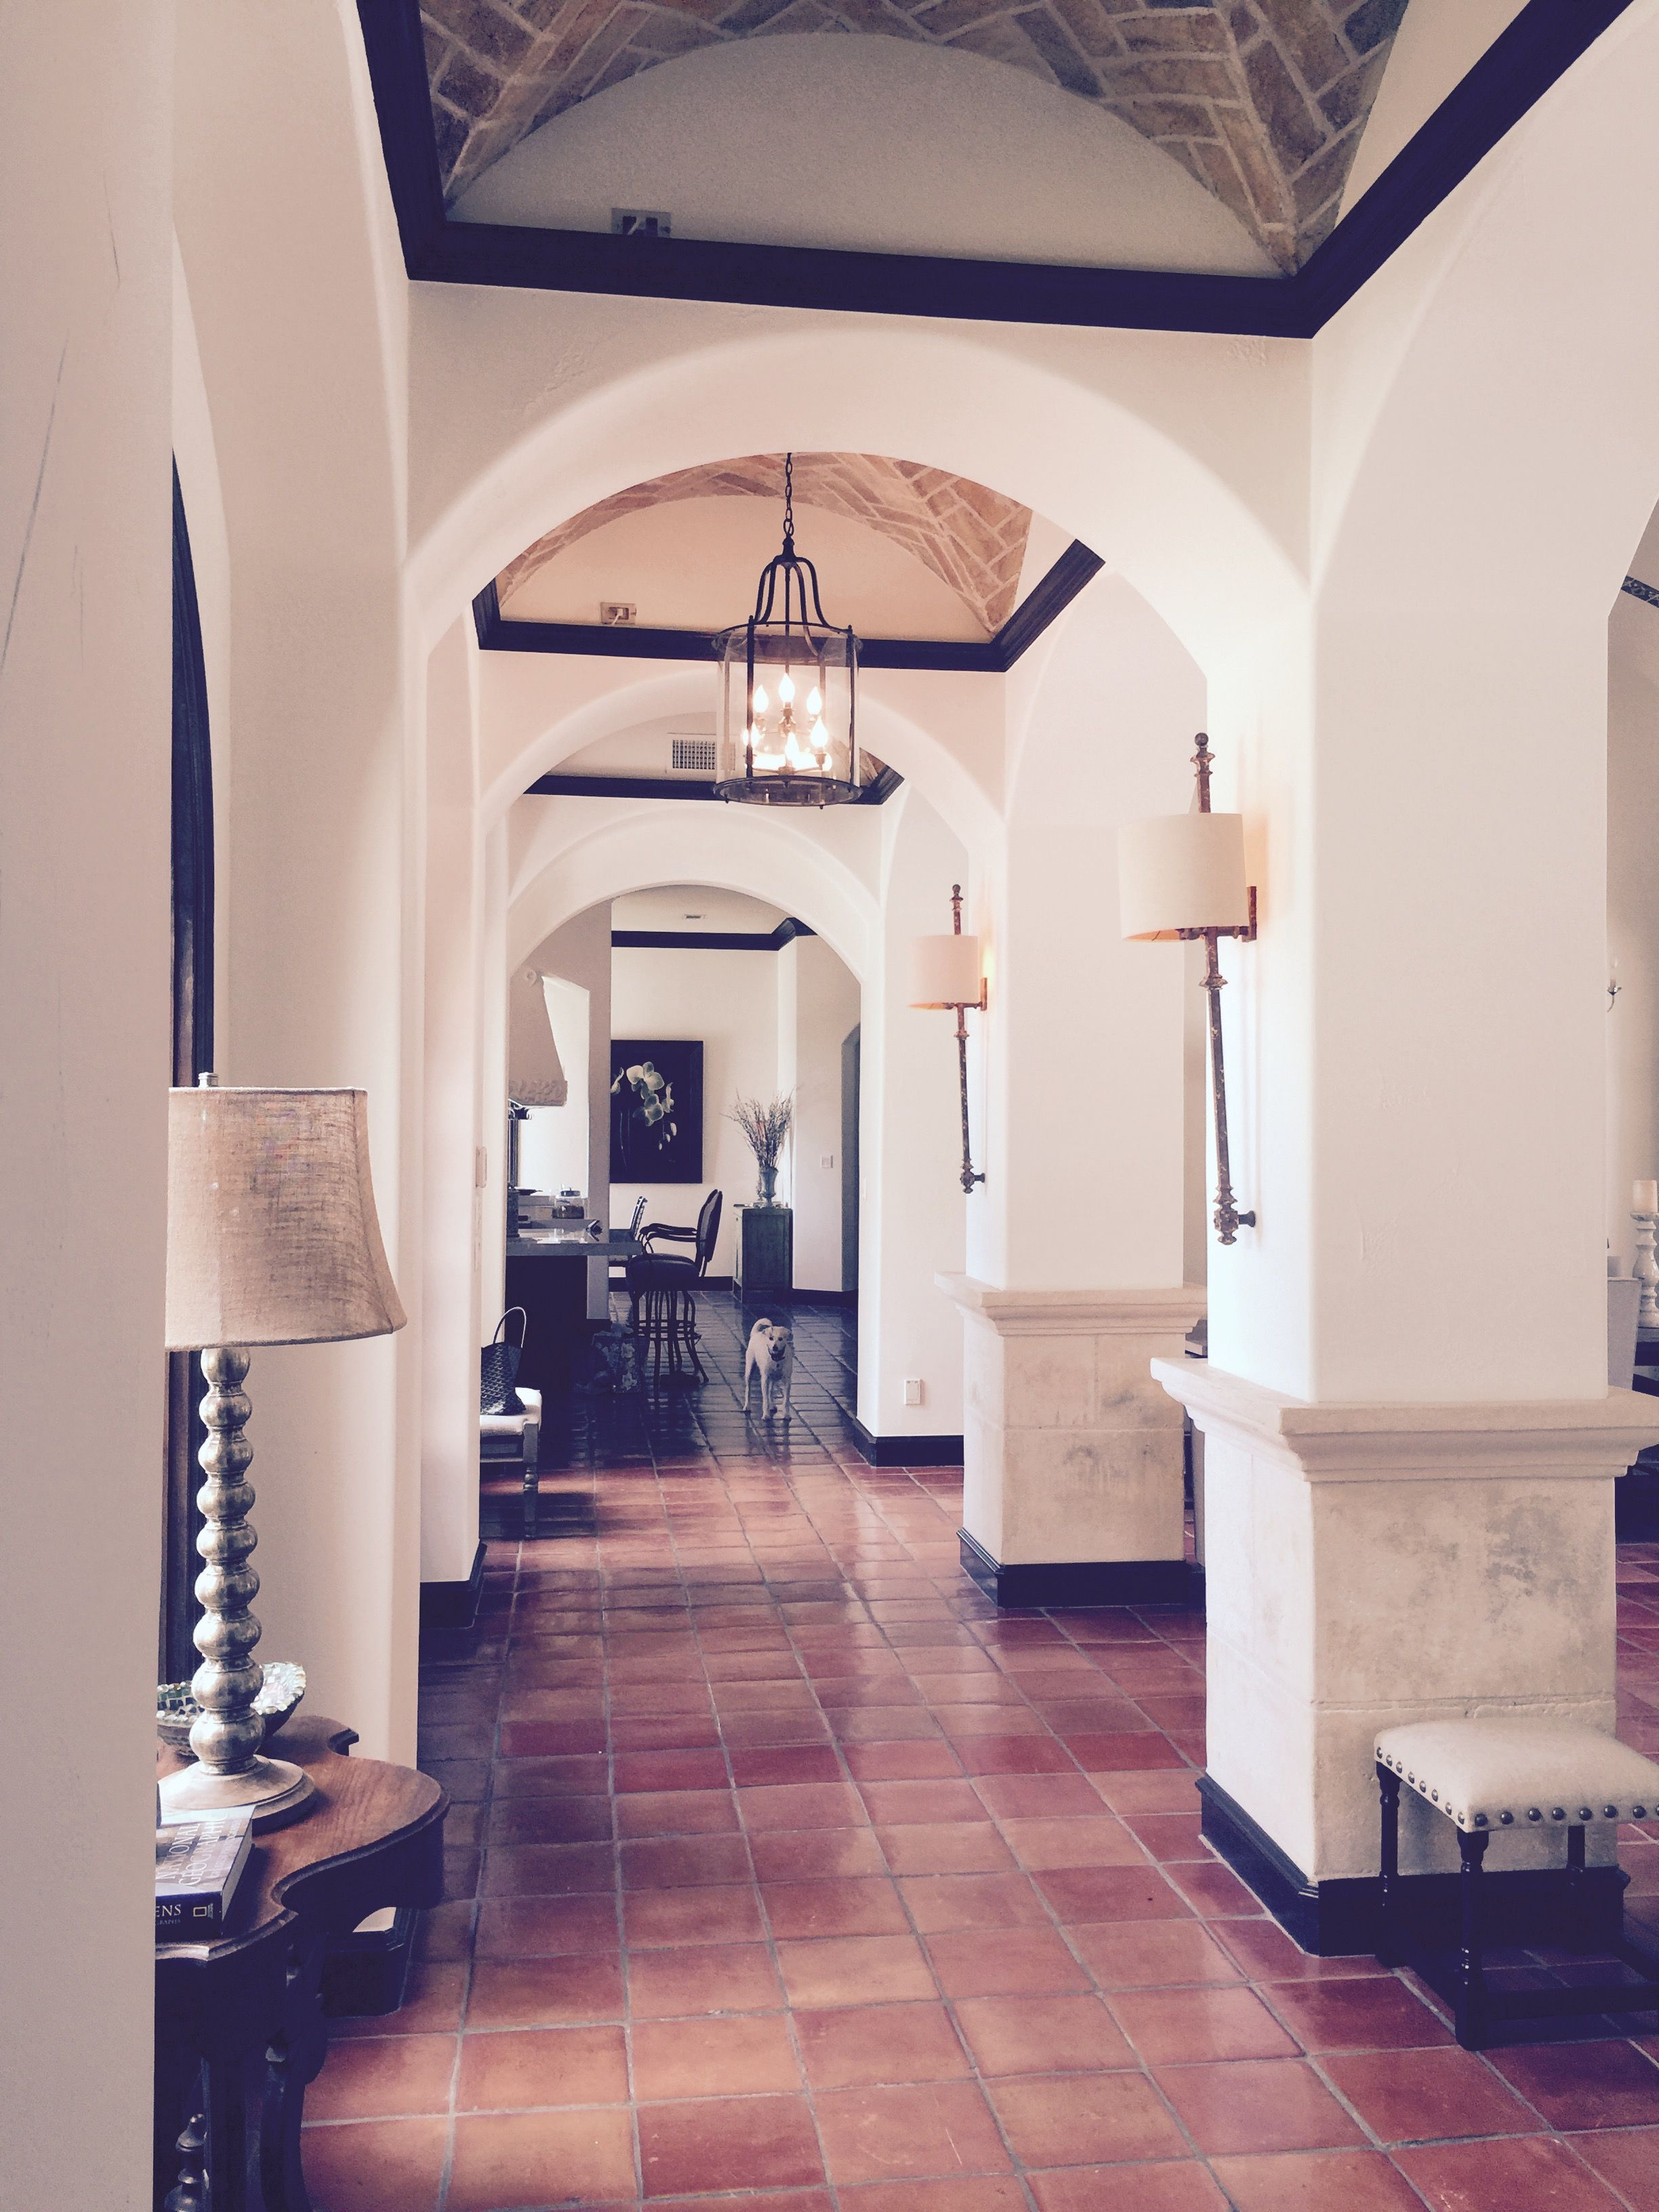 love the tile and arches